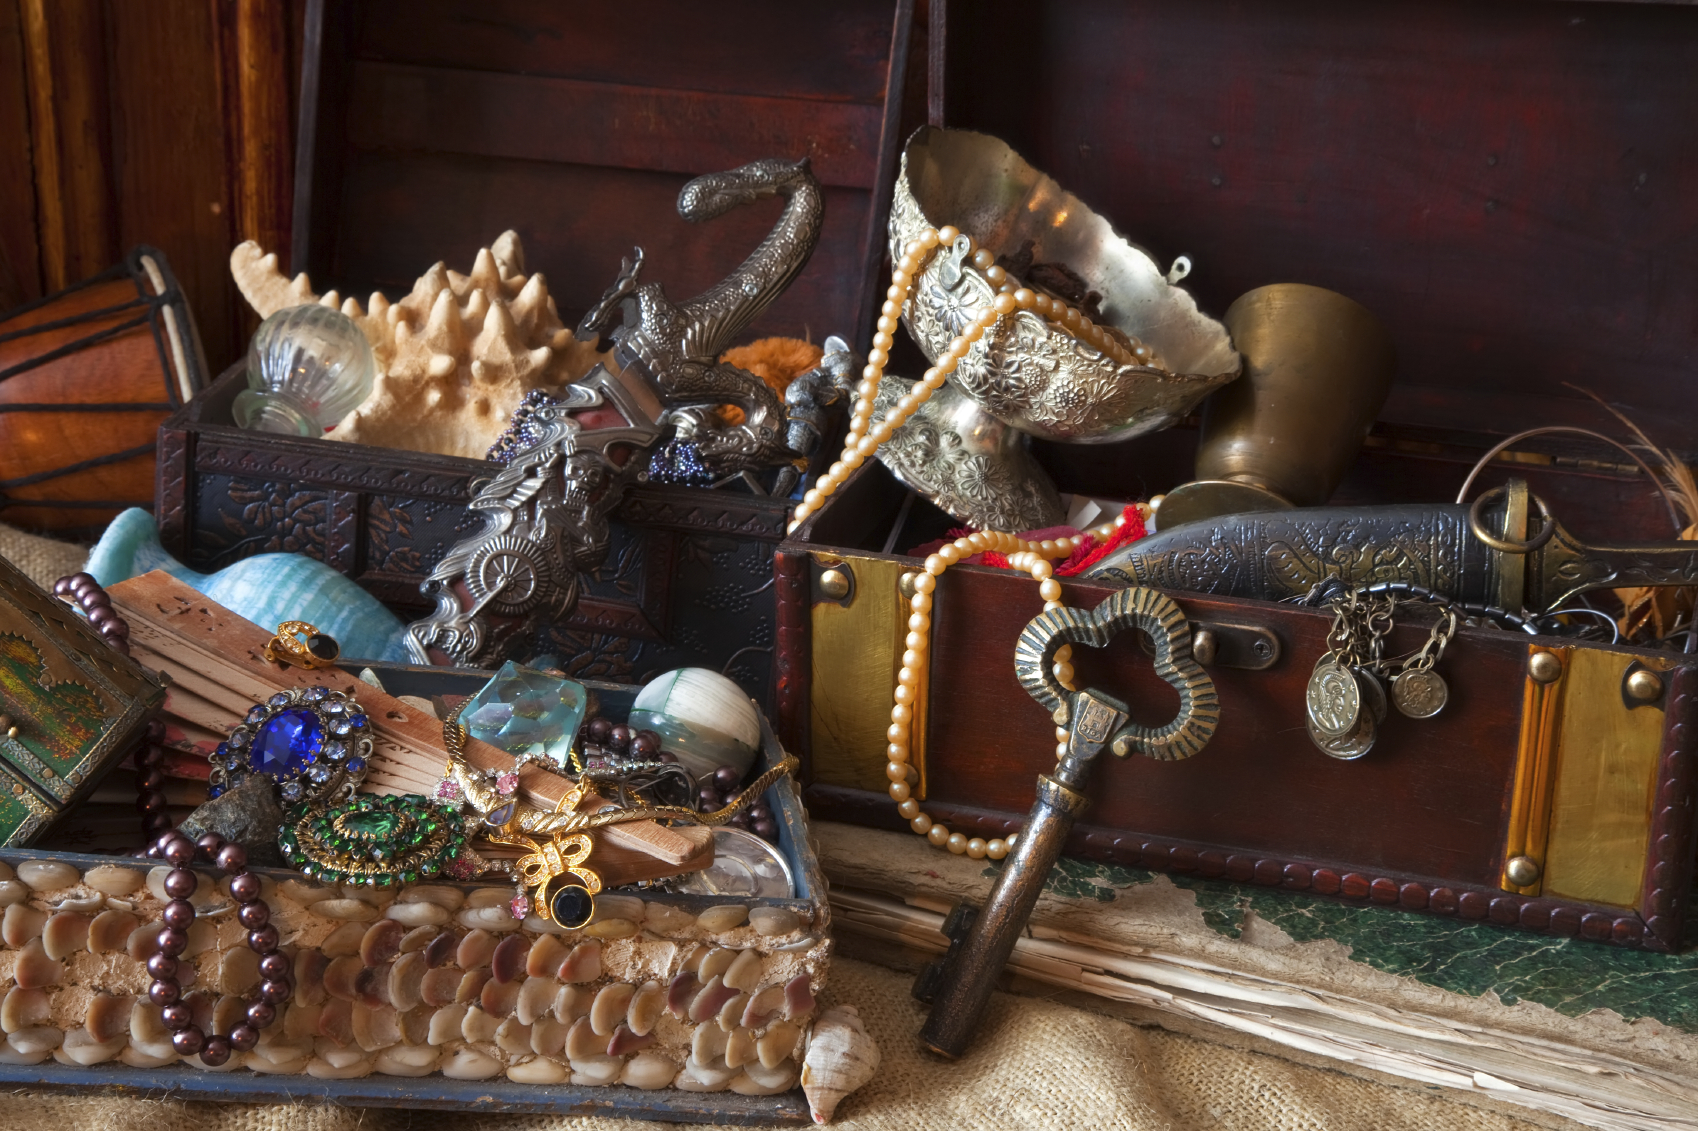 Attic Treasures & Collectibles returns to Main Library